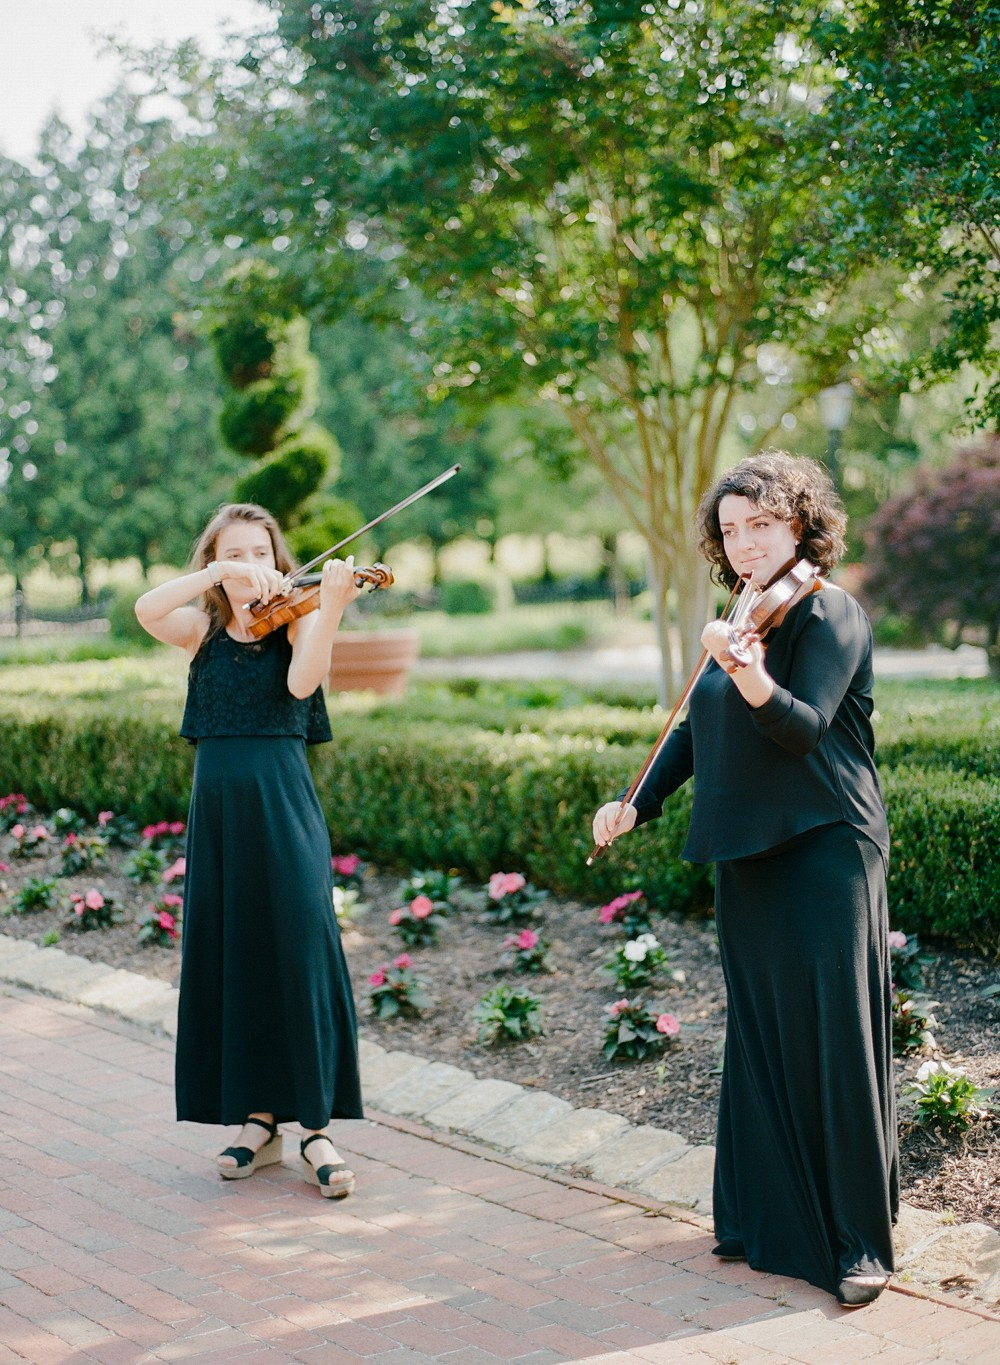 Danielle and Kyle's Timeless and Stylish Estate Wedding